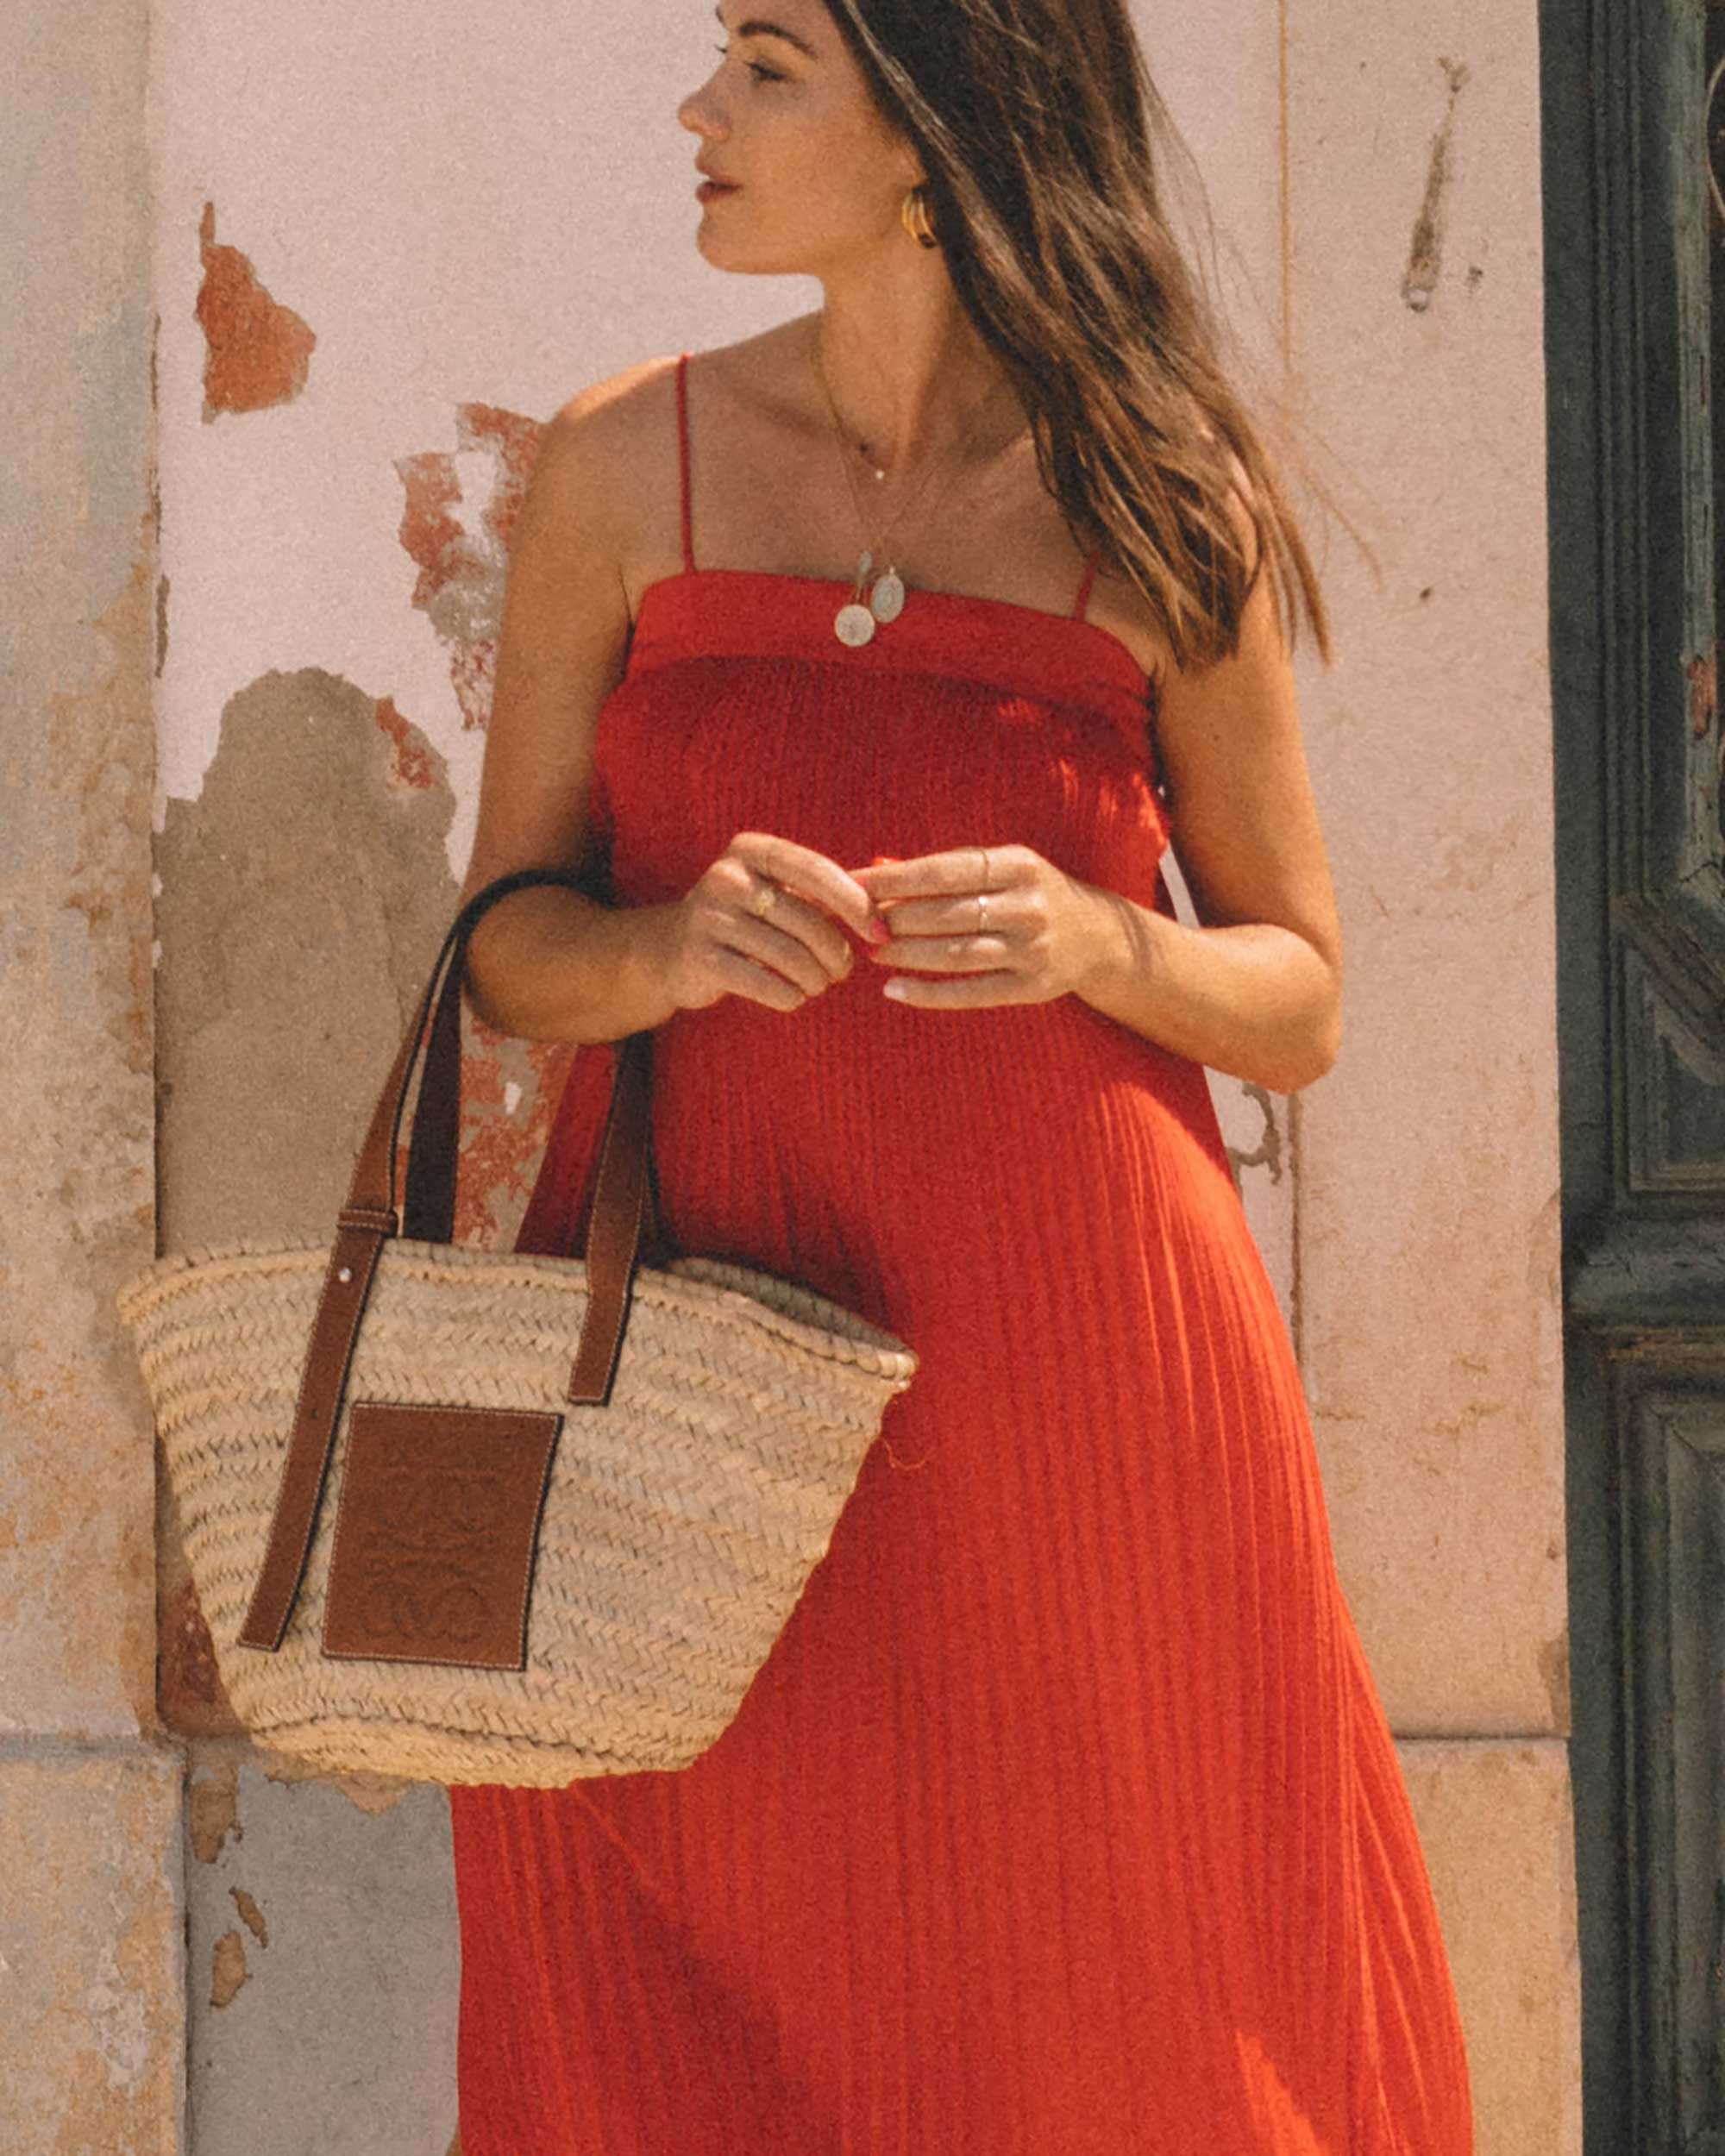 Sarah Butler of Sarah Styles Seattle wears And Other Stories red pleated midi dress with a square cut, spaghetti straps and plisse detailing in Lisbon, Portugal | @sarahchristine -6.jpg